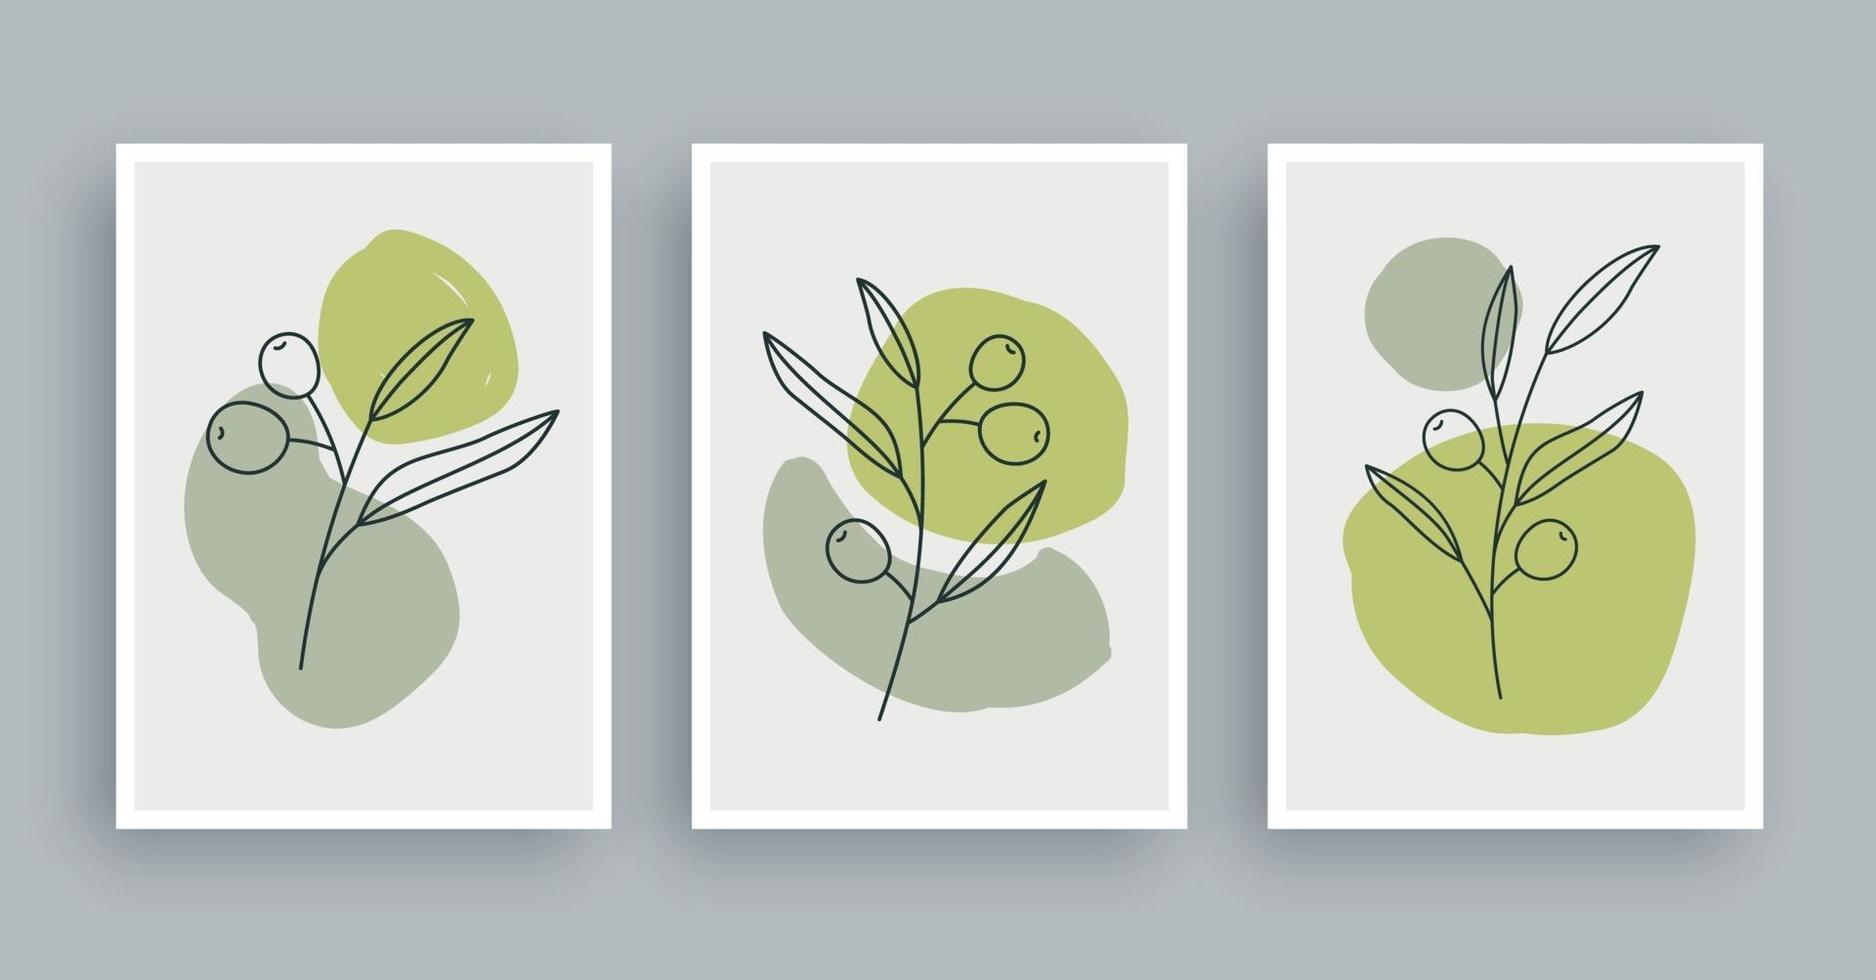 olive branch botanical wall art painting background. Foliage art and hand drawn line with abstract shape. Mid century scandinavian nordic style. vector